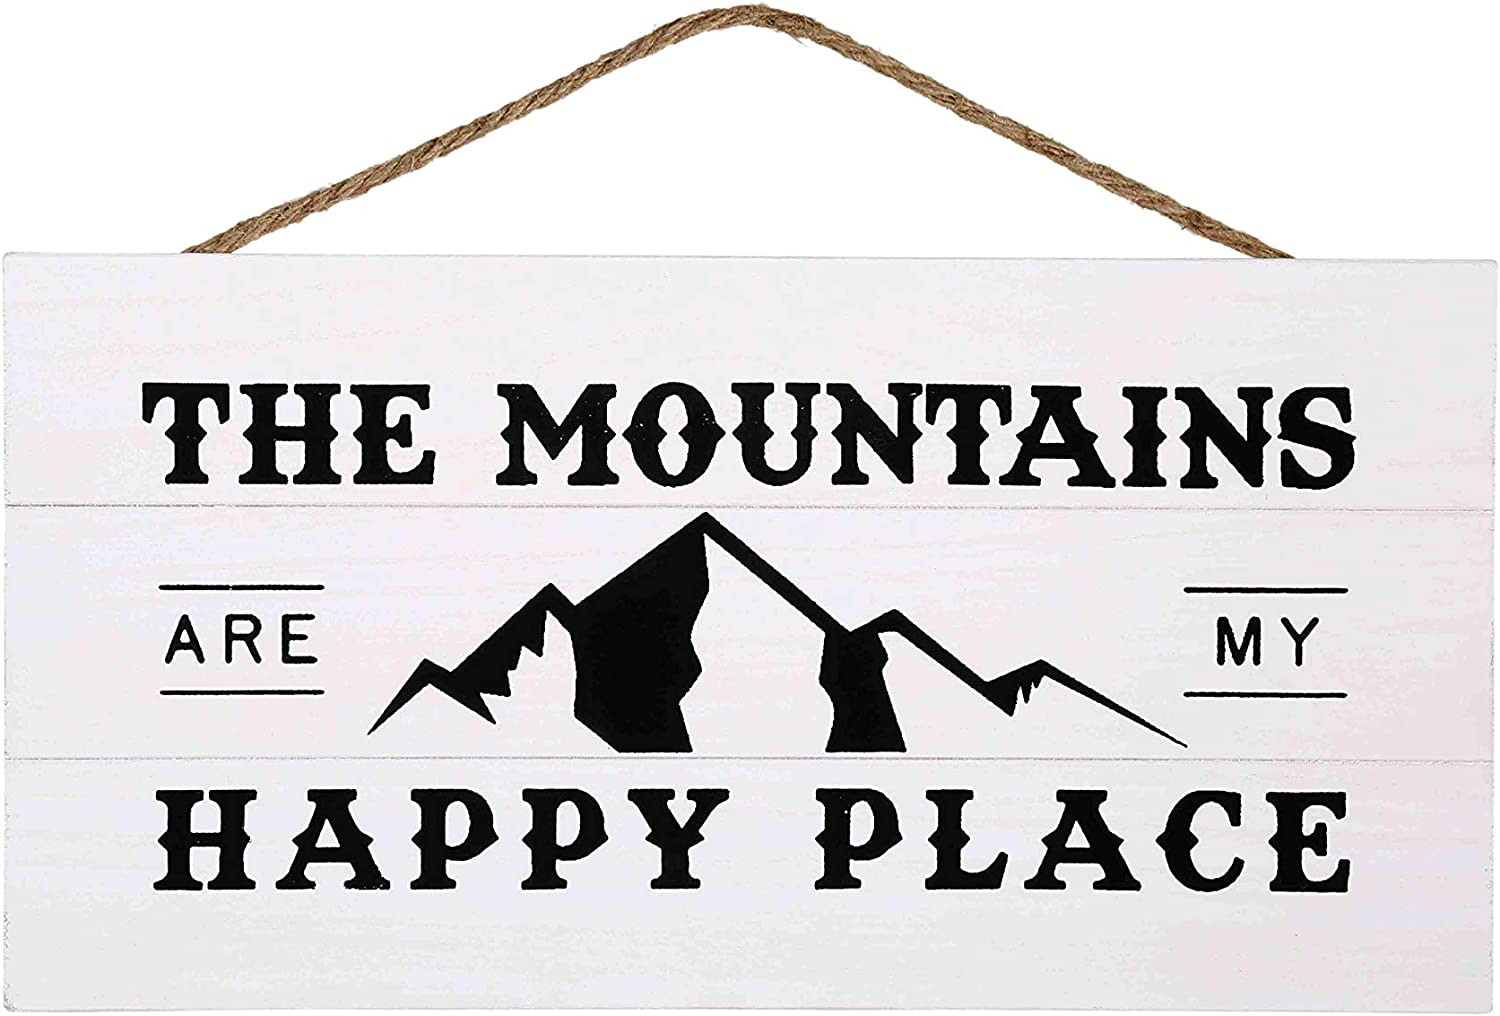 Mountains are My Happy Place Wood Plank Hanging Sign for Home Decor (13.75 x 6.9 Inches with White Background)